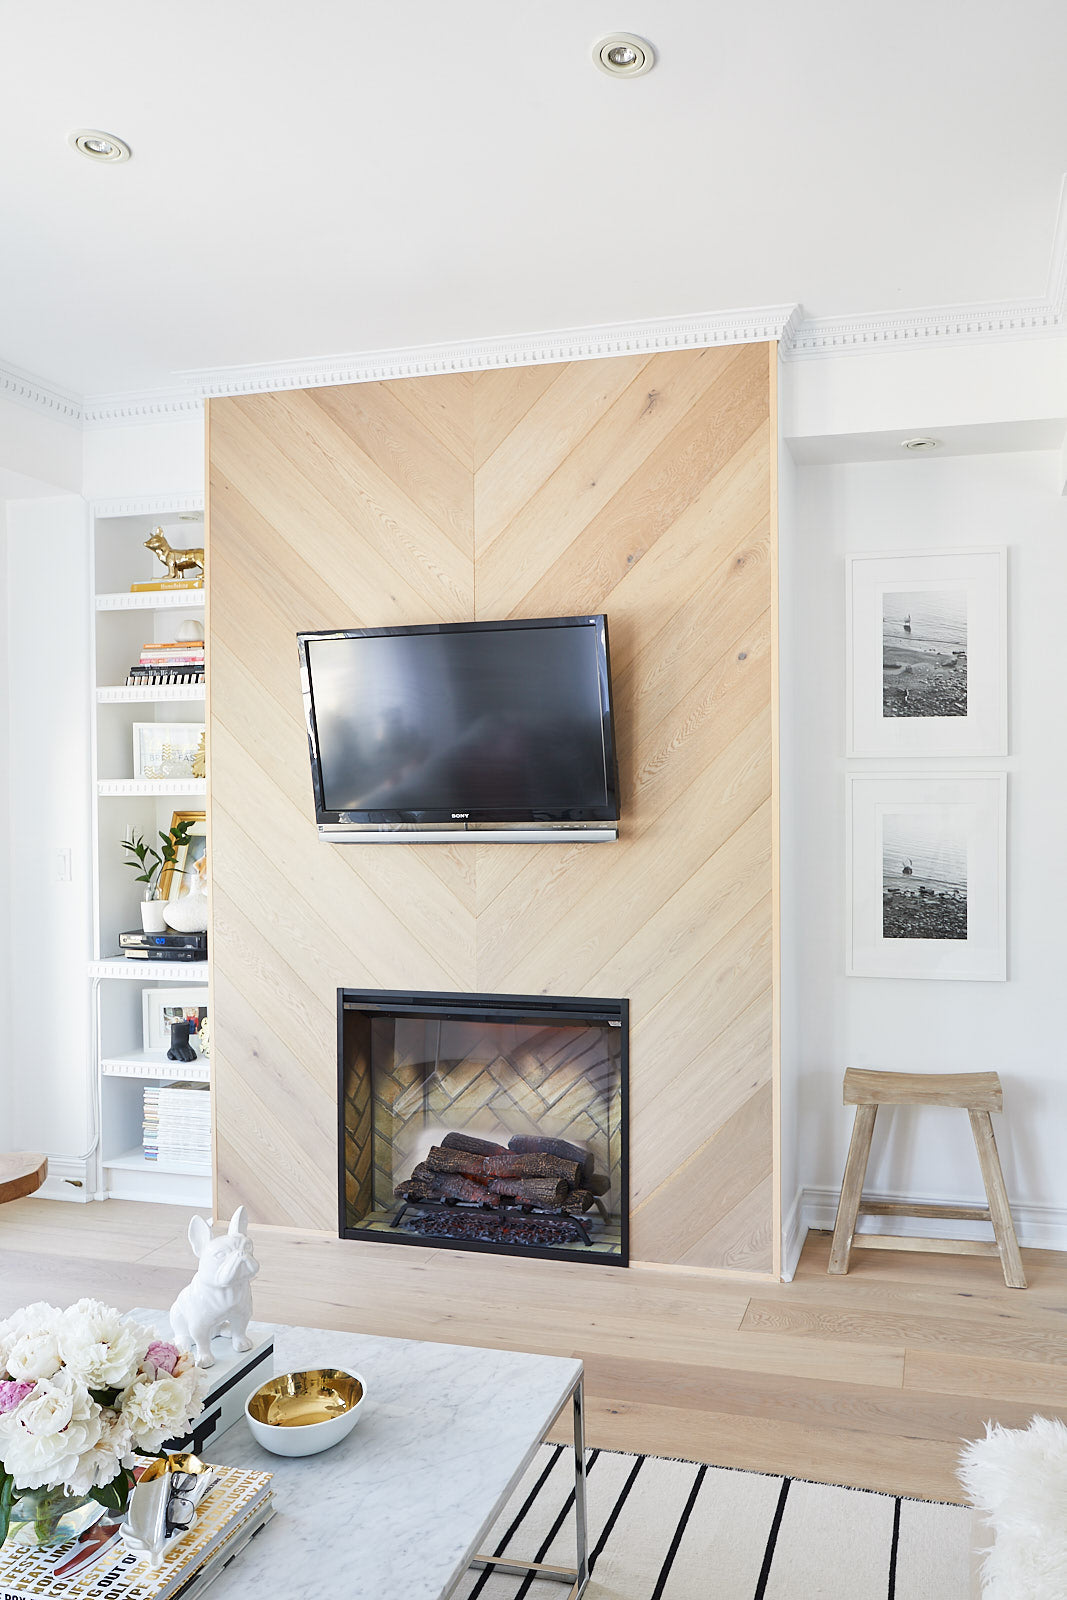 Fireplace wall with TV above